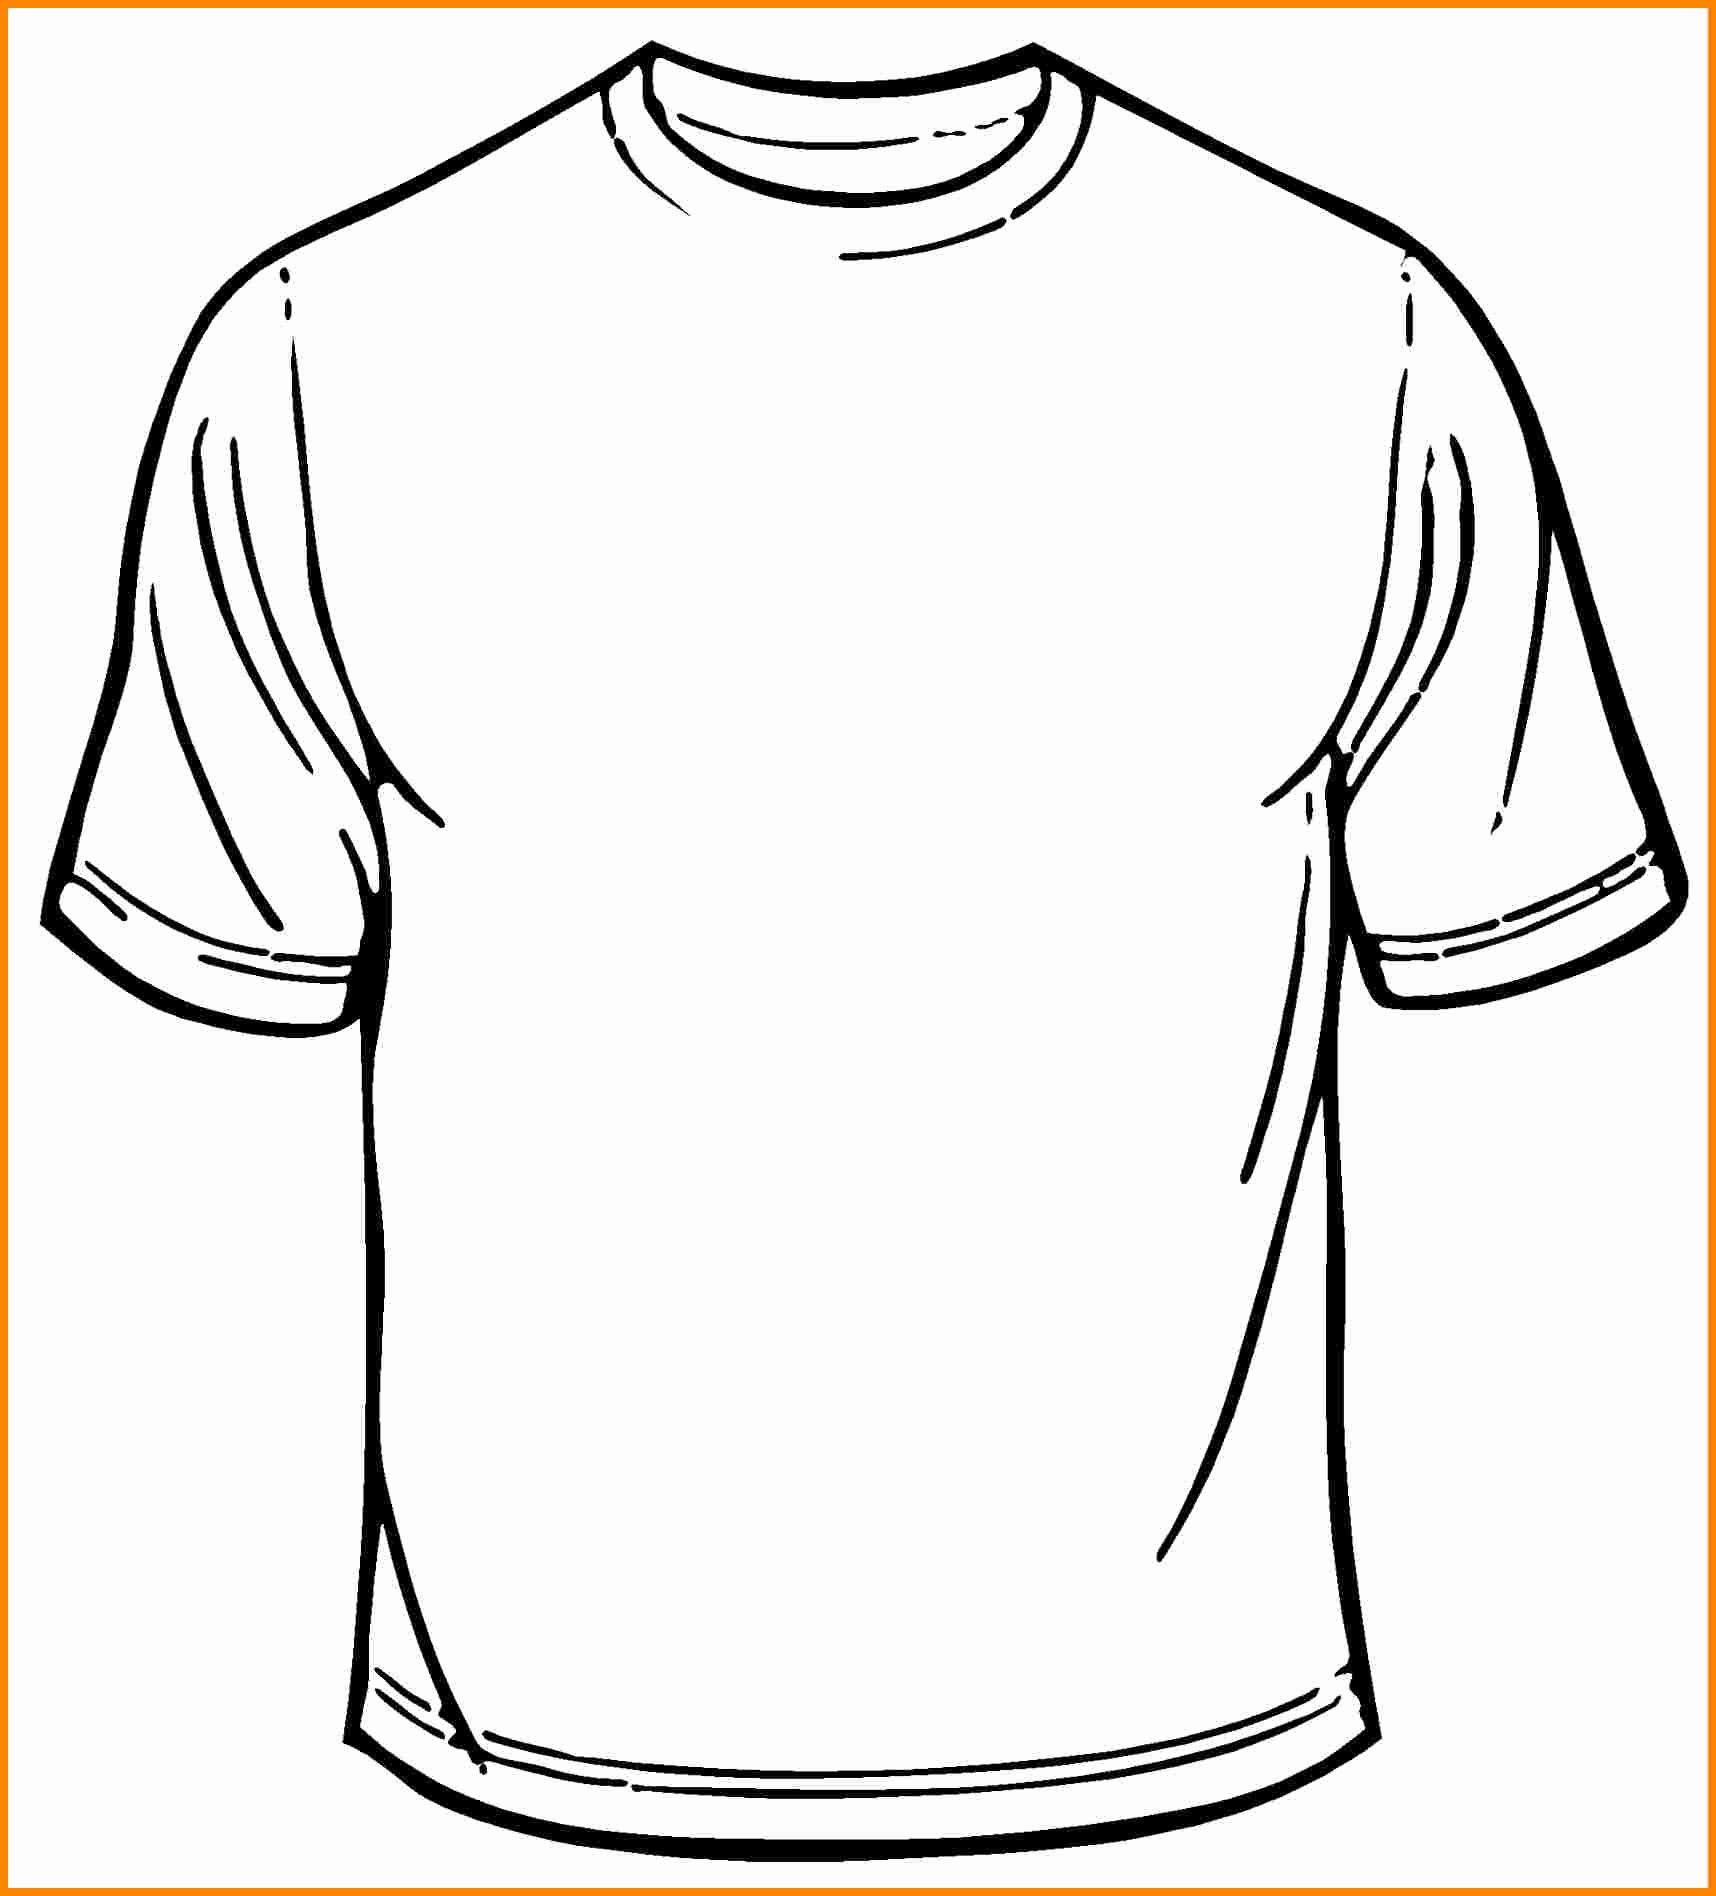 T-shirt Drawing Unique T Shirt Drawing Outline at Getdrawings